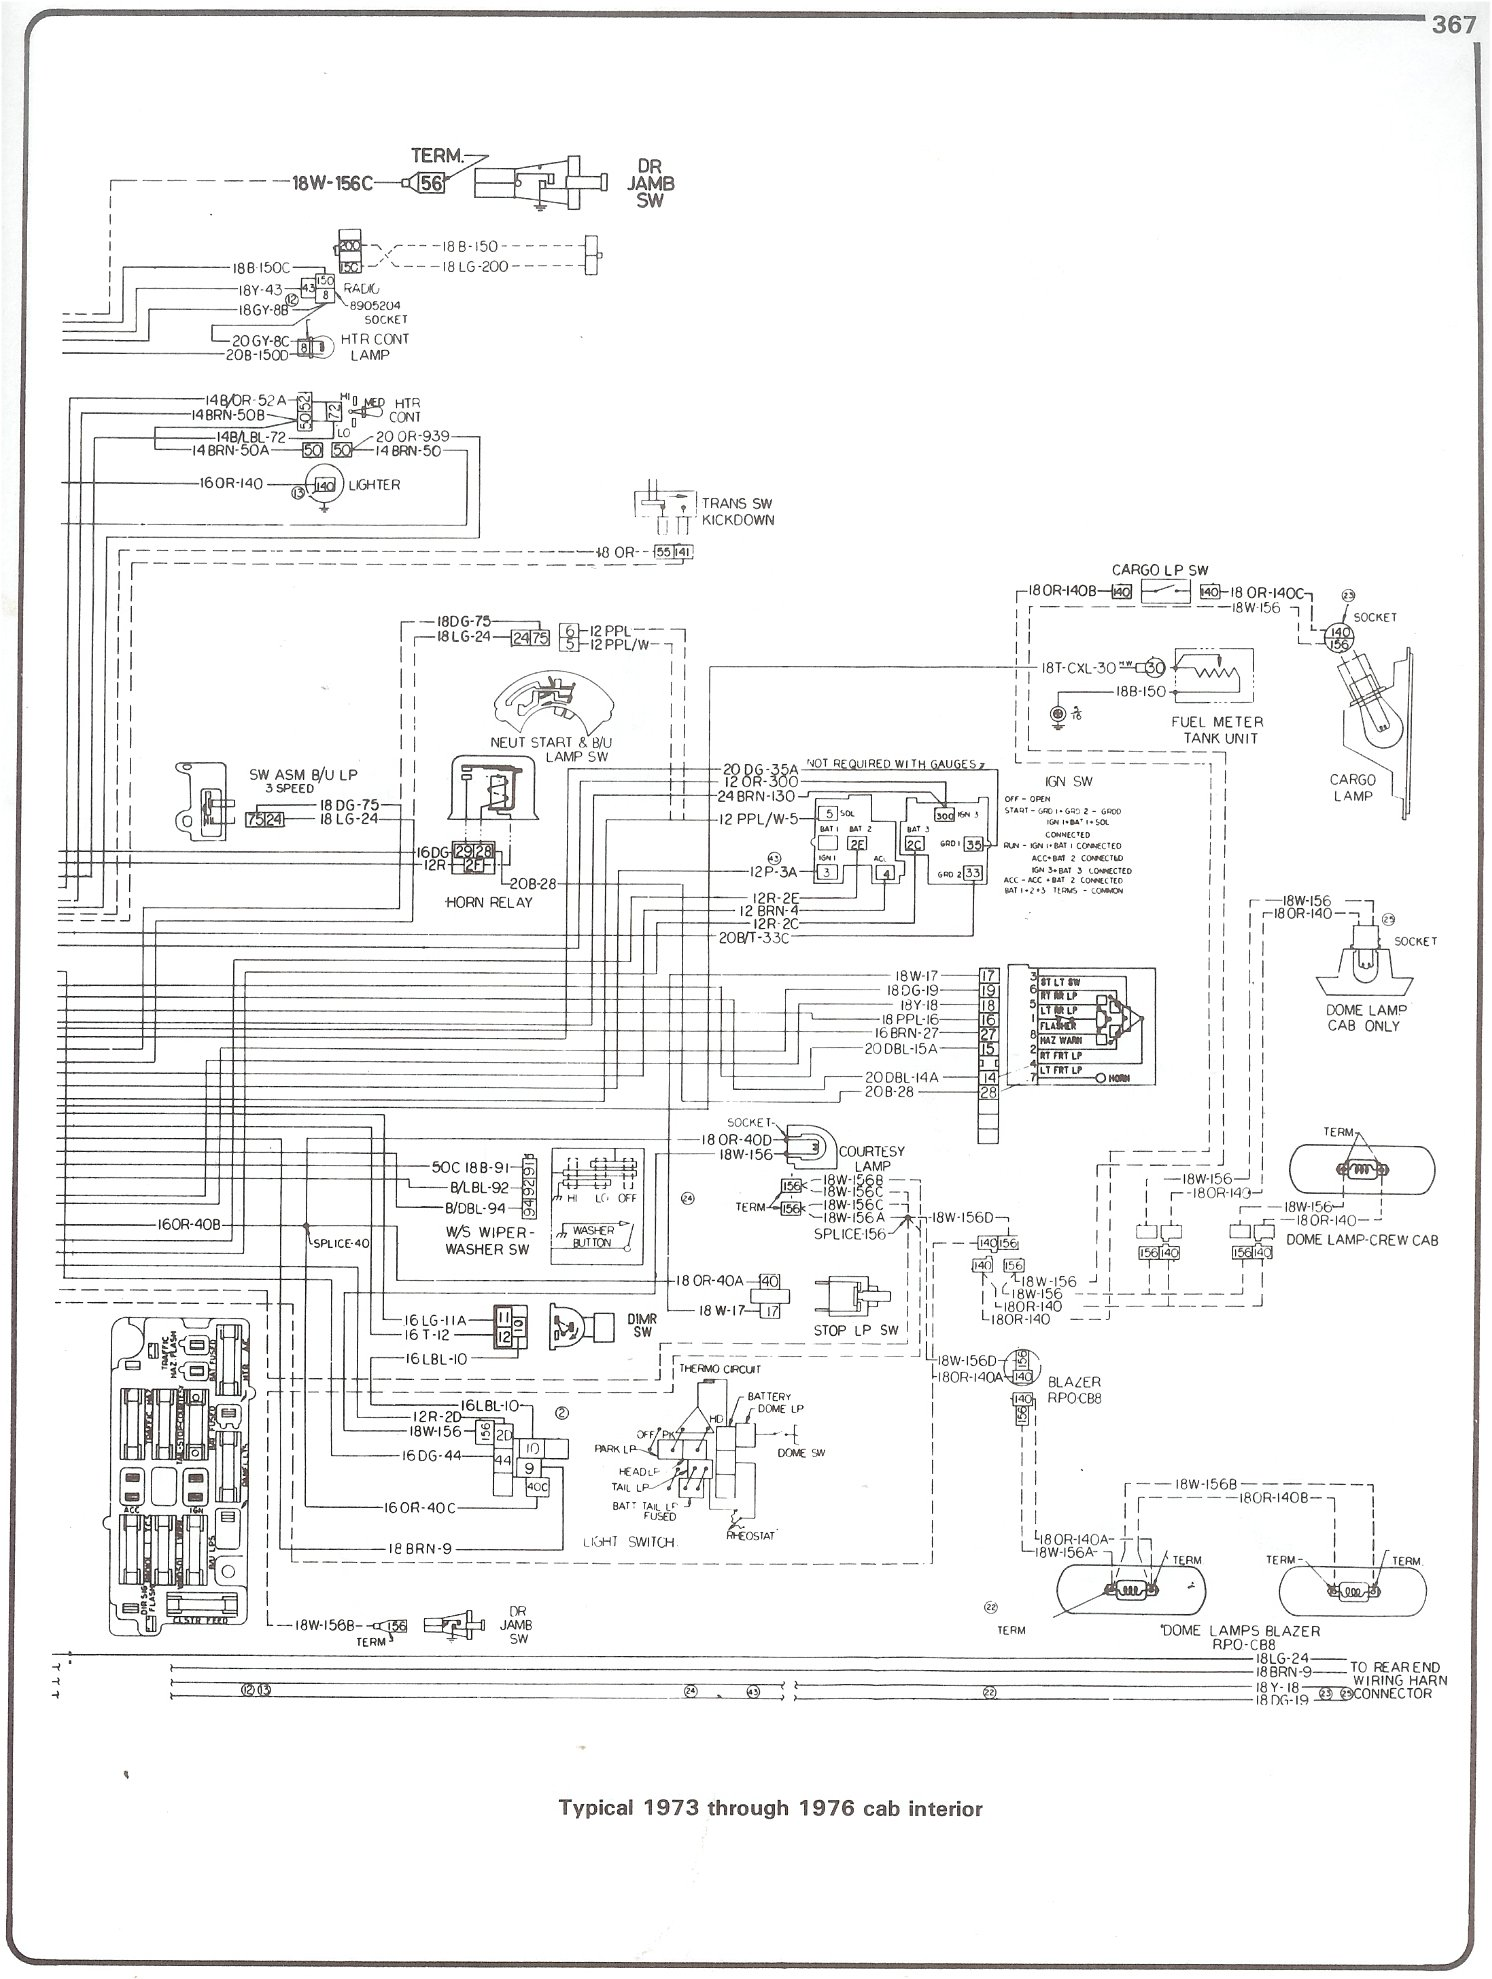 Complete 73 87 Wiring Diagrams 1974 Isuzu For Free 76 Cab Interior